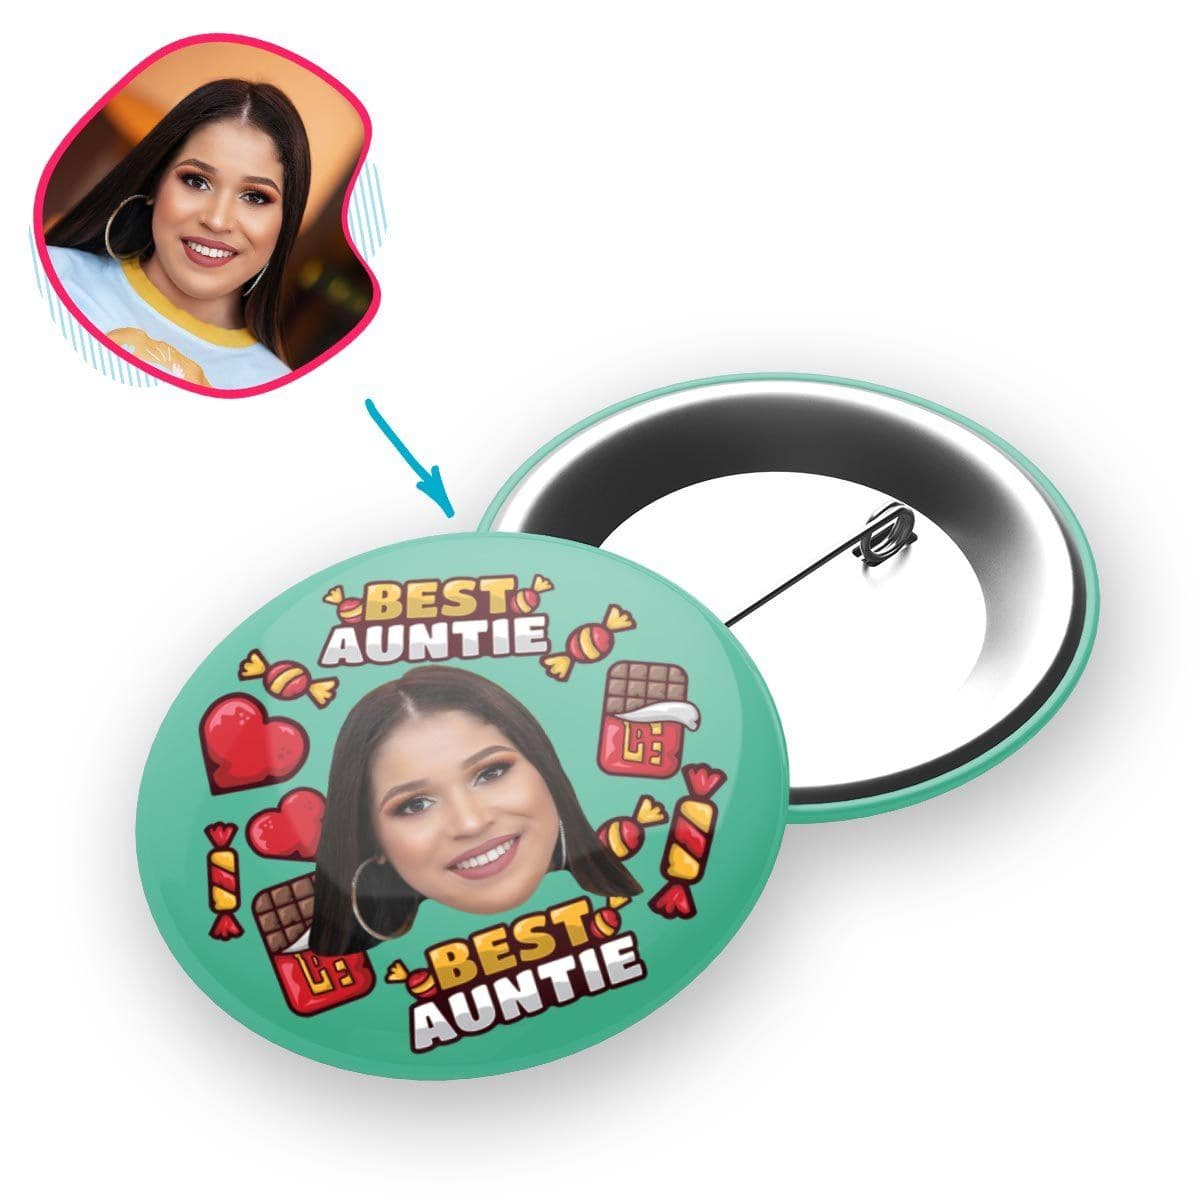 Mint Auntie personalized pin with photo of face printed on it